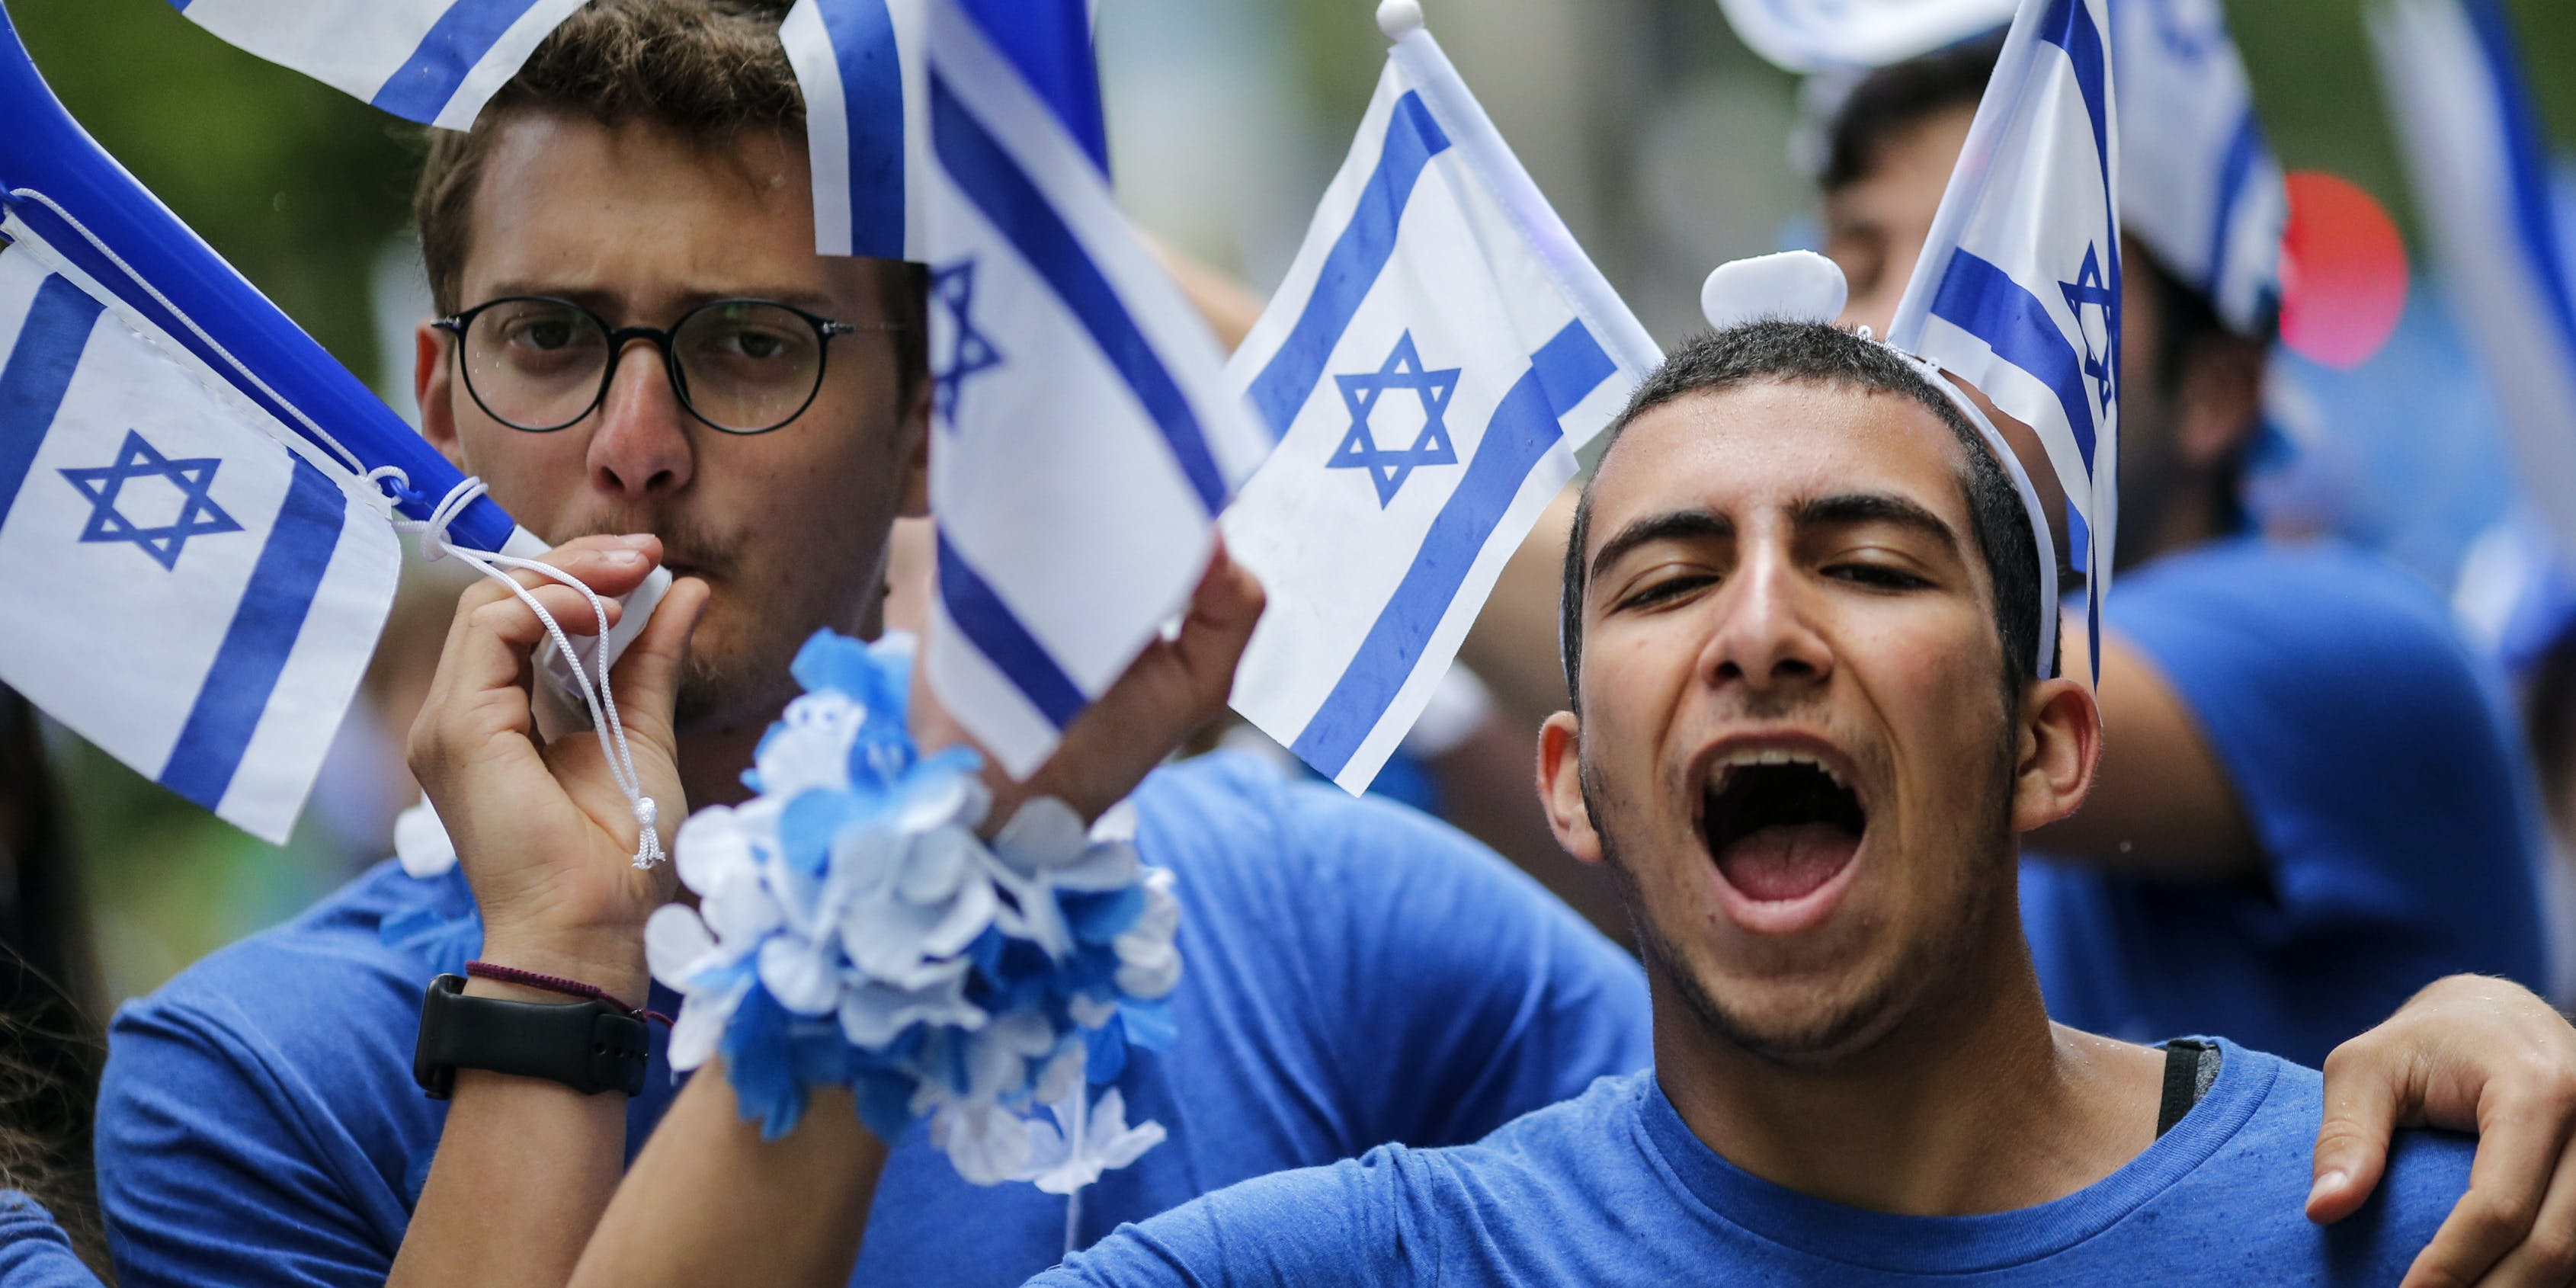 NEW YORK, NY - JUNE 03: People participate in the annual Celebrate Israel Parade on June 3, 2018 in New York City. Security will be tight for the parade which marks the 70th anniversary of the founding of Israel. (Photo by Kena Betancur/Getty Images)